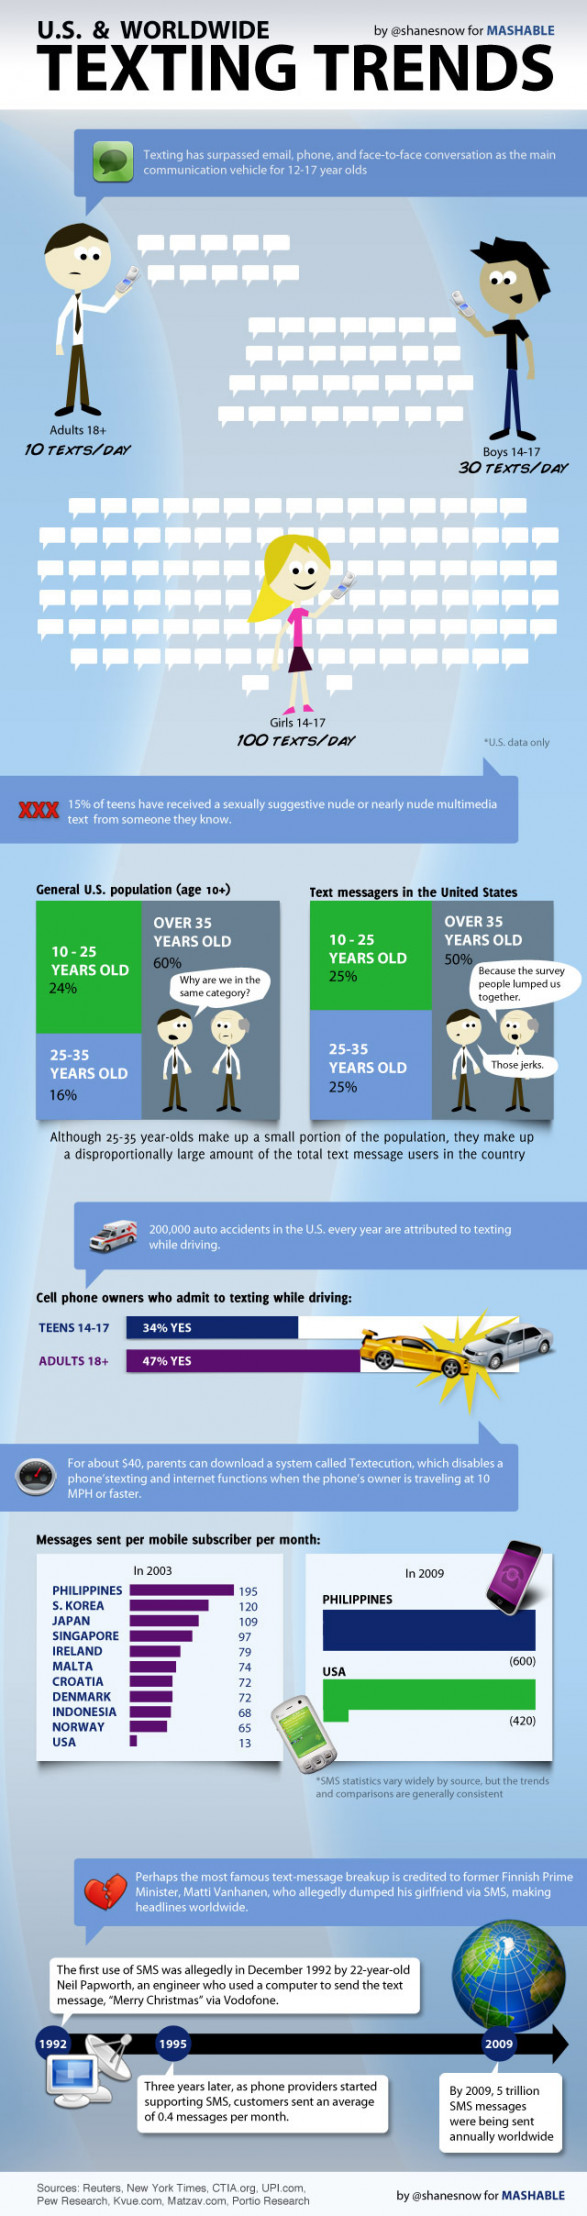 US &amp; Worldwide Texting Trends 